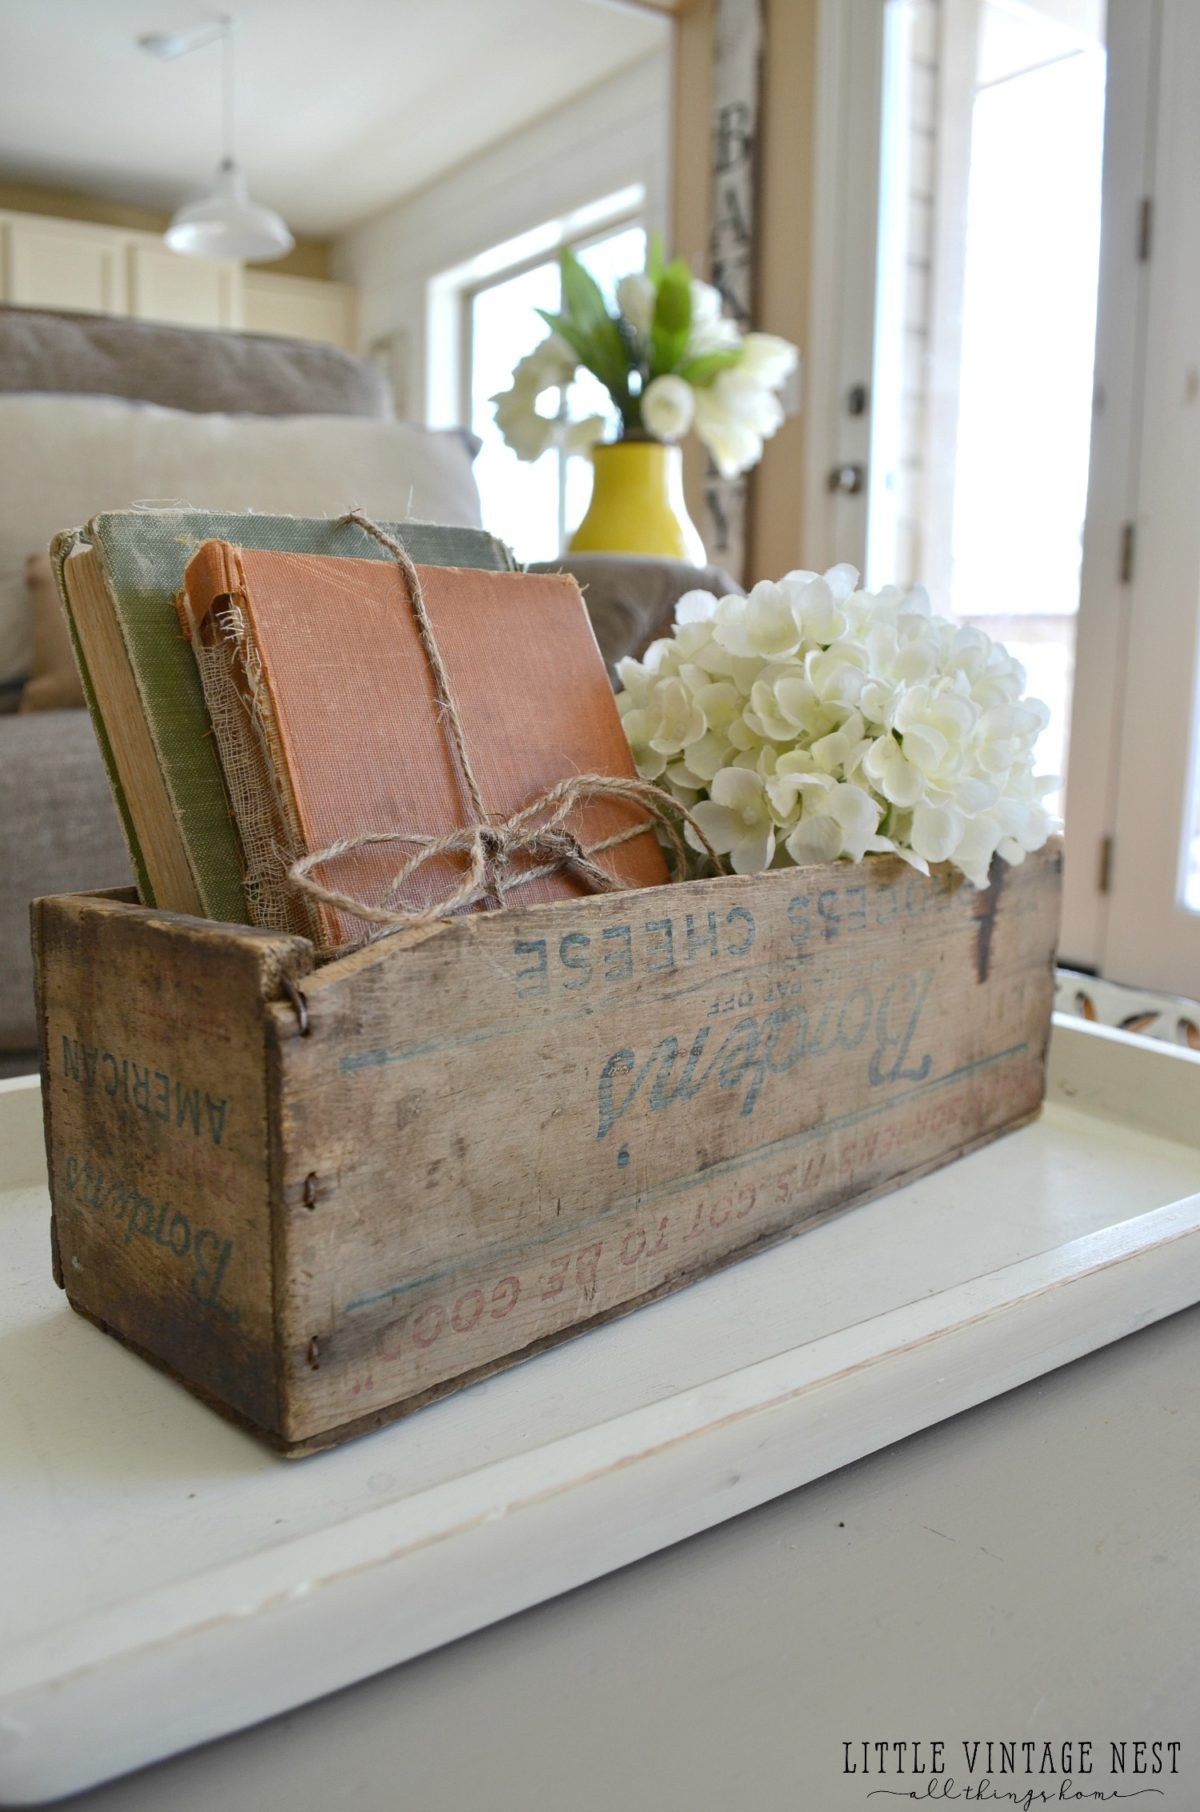 How To Decorate With Vintage Decor Little Vintage Nest: home interior book